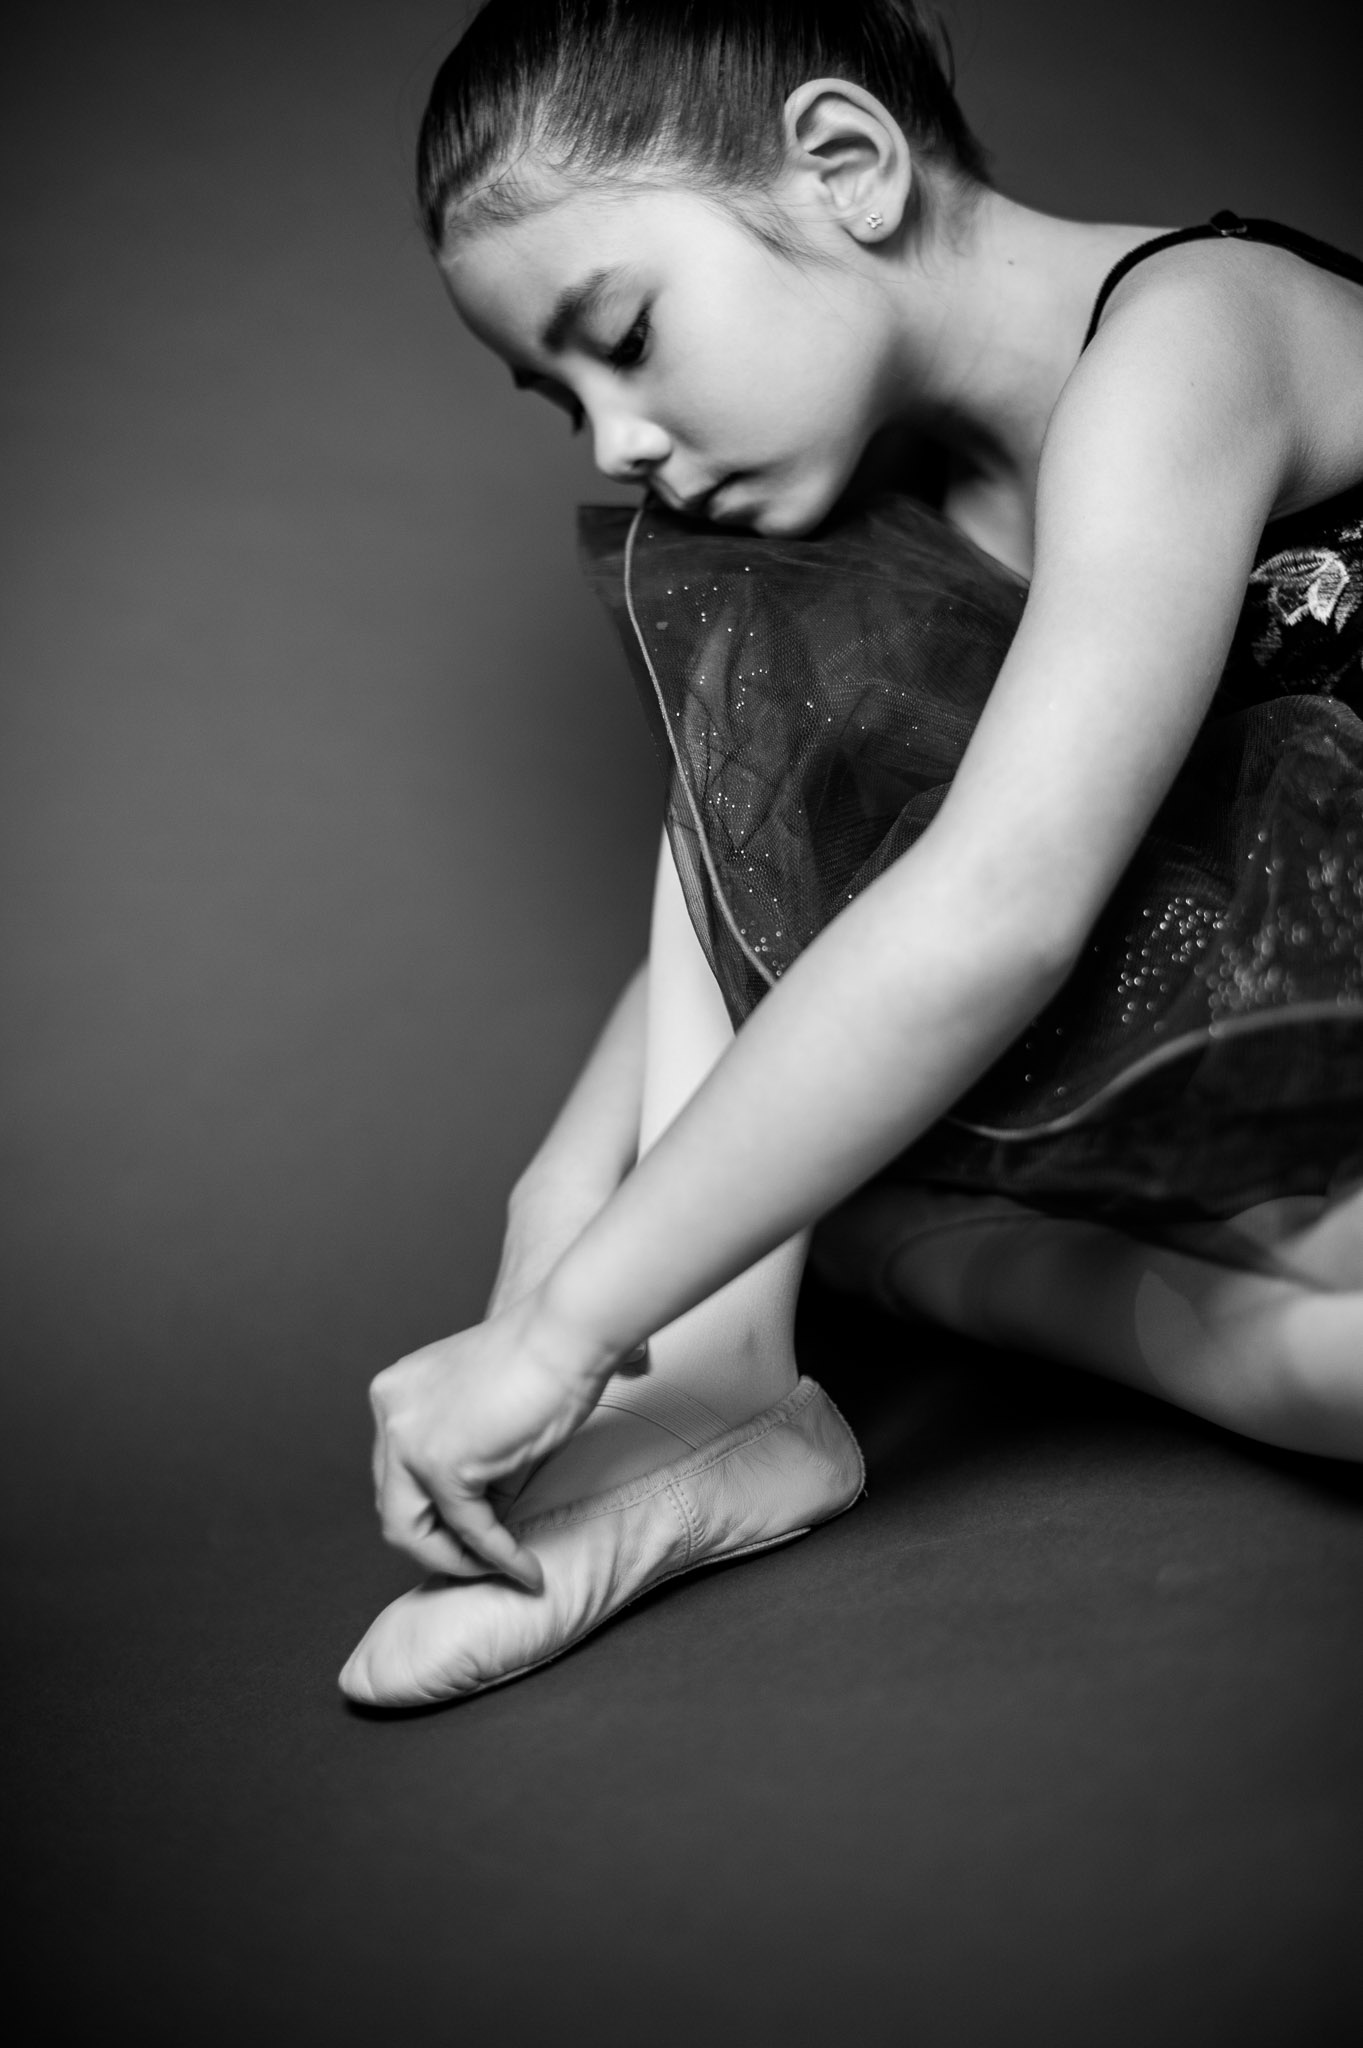 ballet studio portraits by Erin Borzellino. NYC area portrait photographer